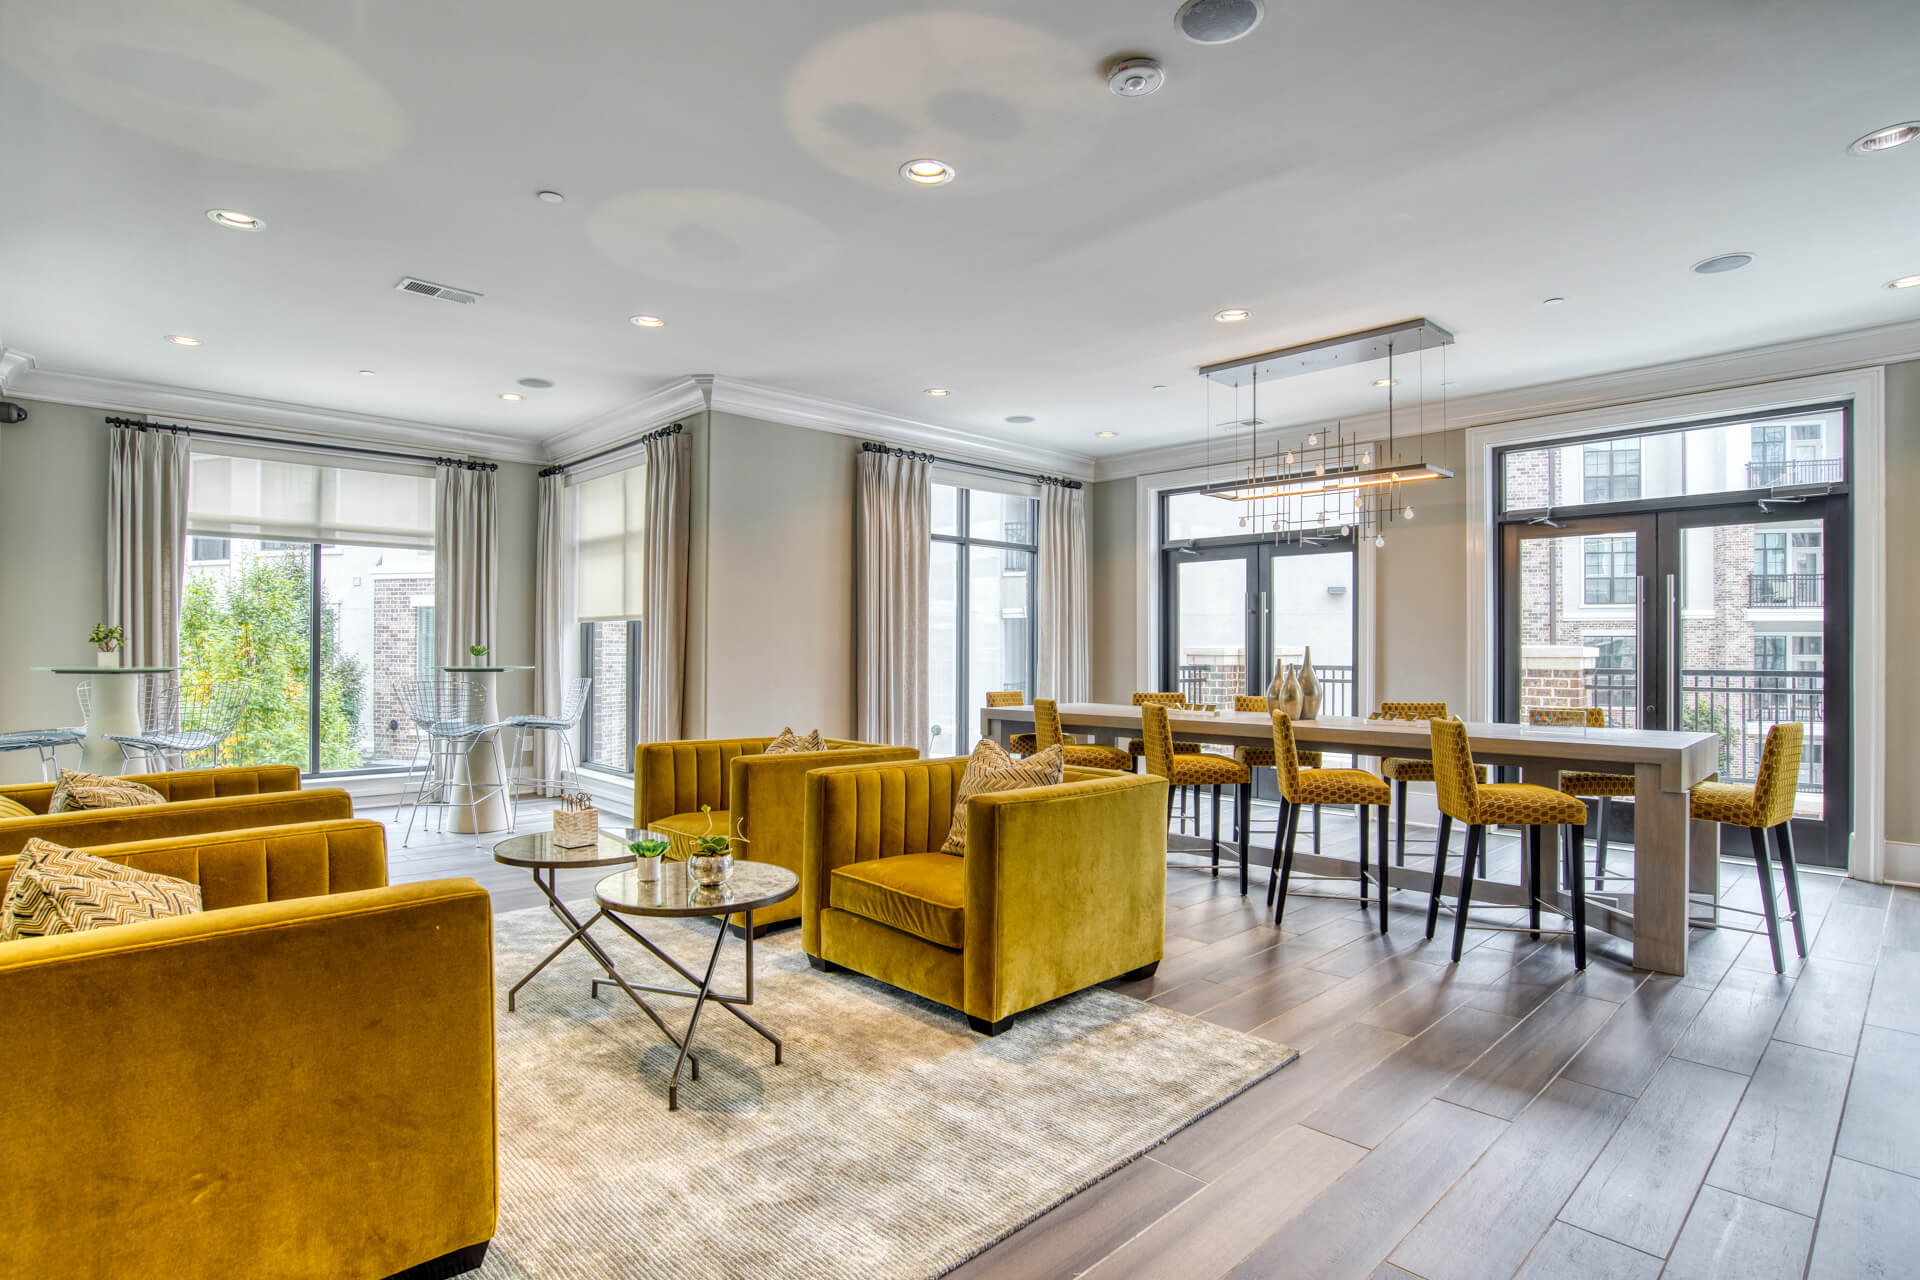 Free WiFi throughout resident clubhouse at Windsor Chastain, Atlanta, GA